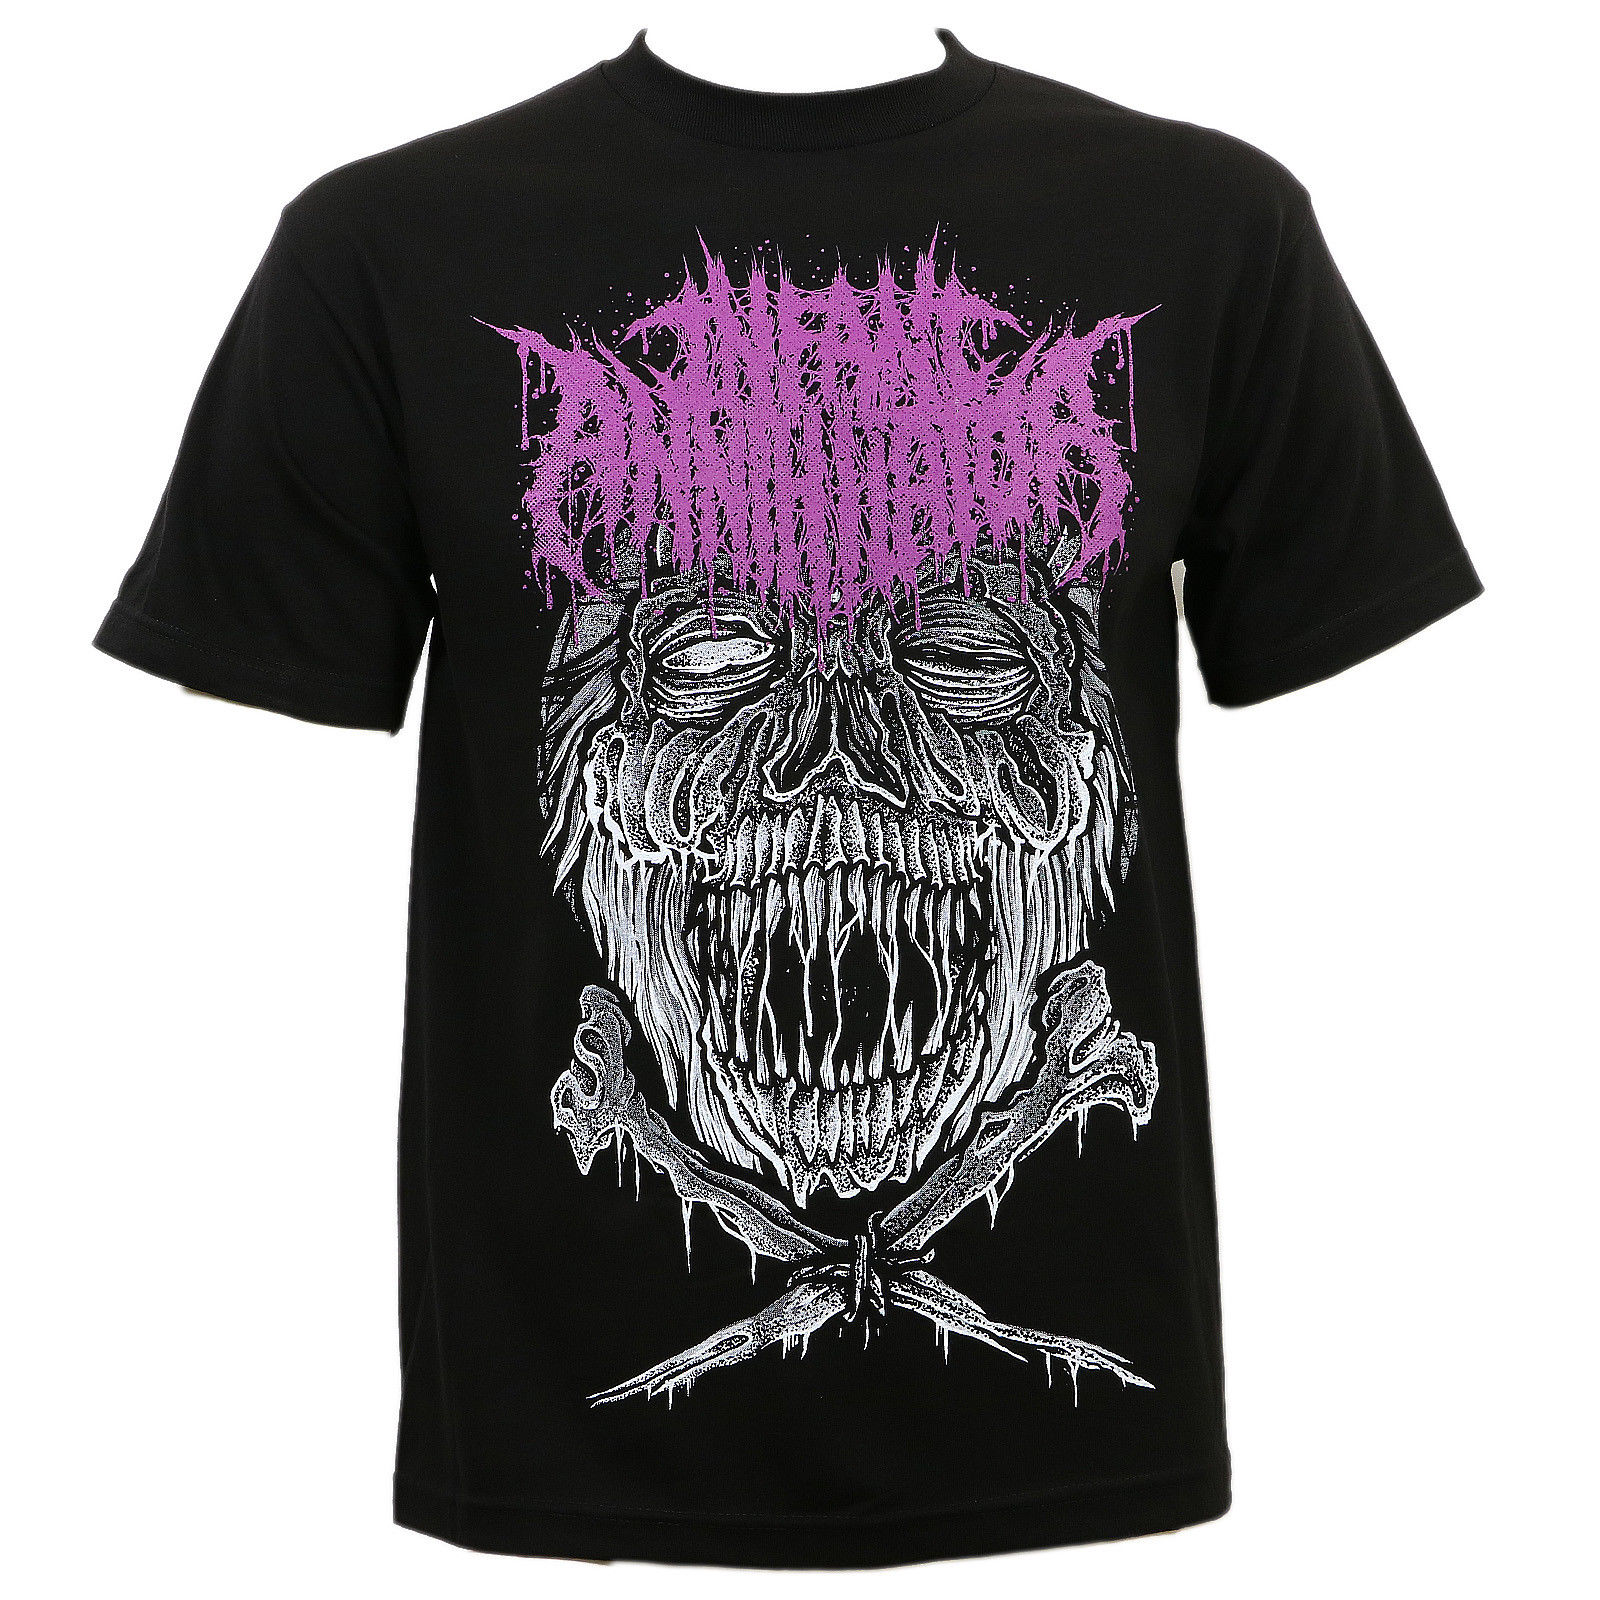 Authentic INFANT ANNIHILATOR Cheeky Deathcore T-Shirt S-3XL NEW